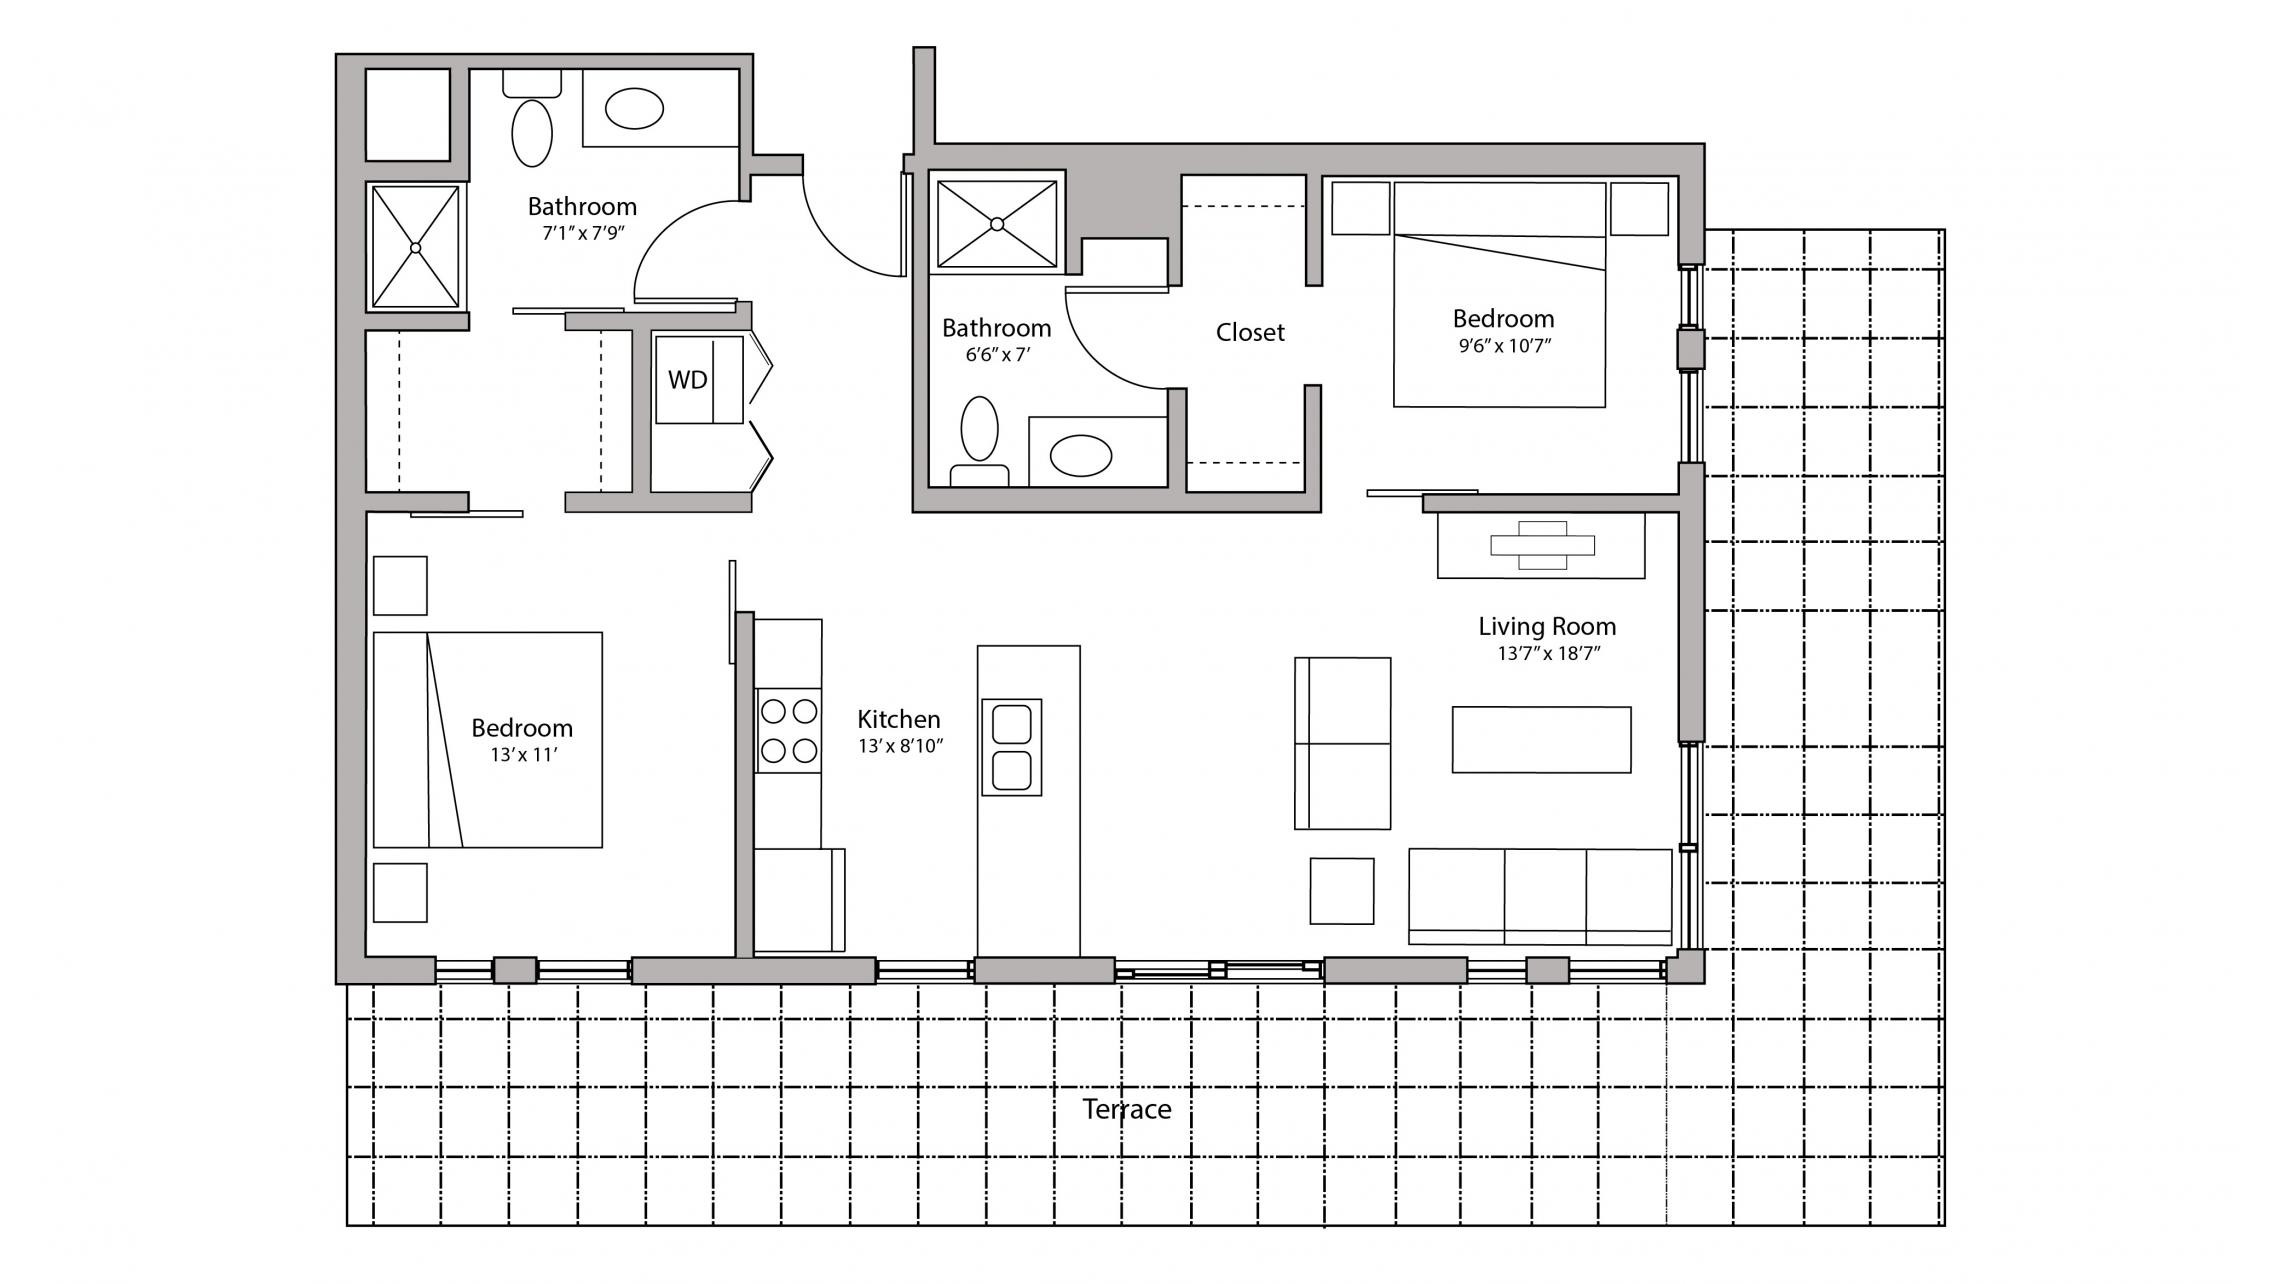 ULI Capitol Hill 501 - Two Bedroom, Two Bathroom Floorplan